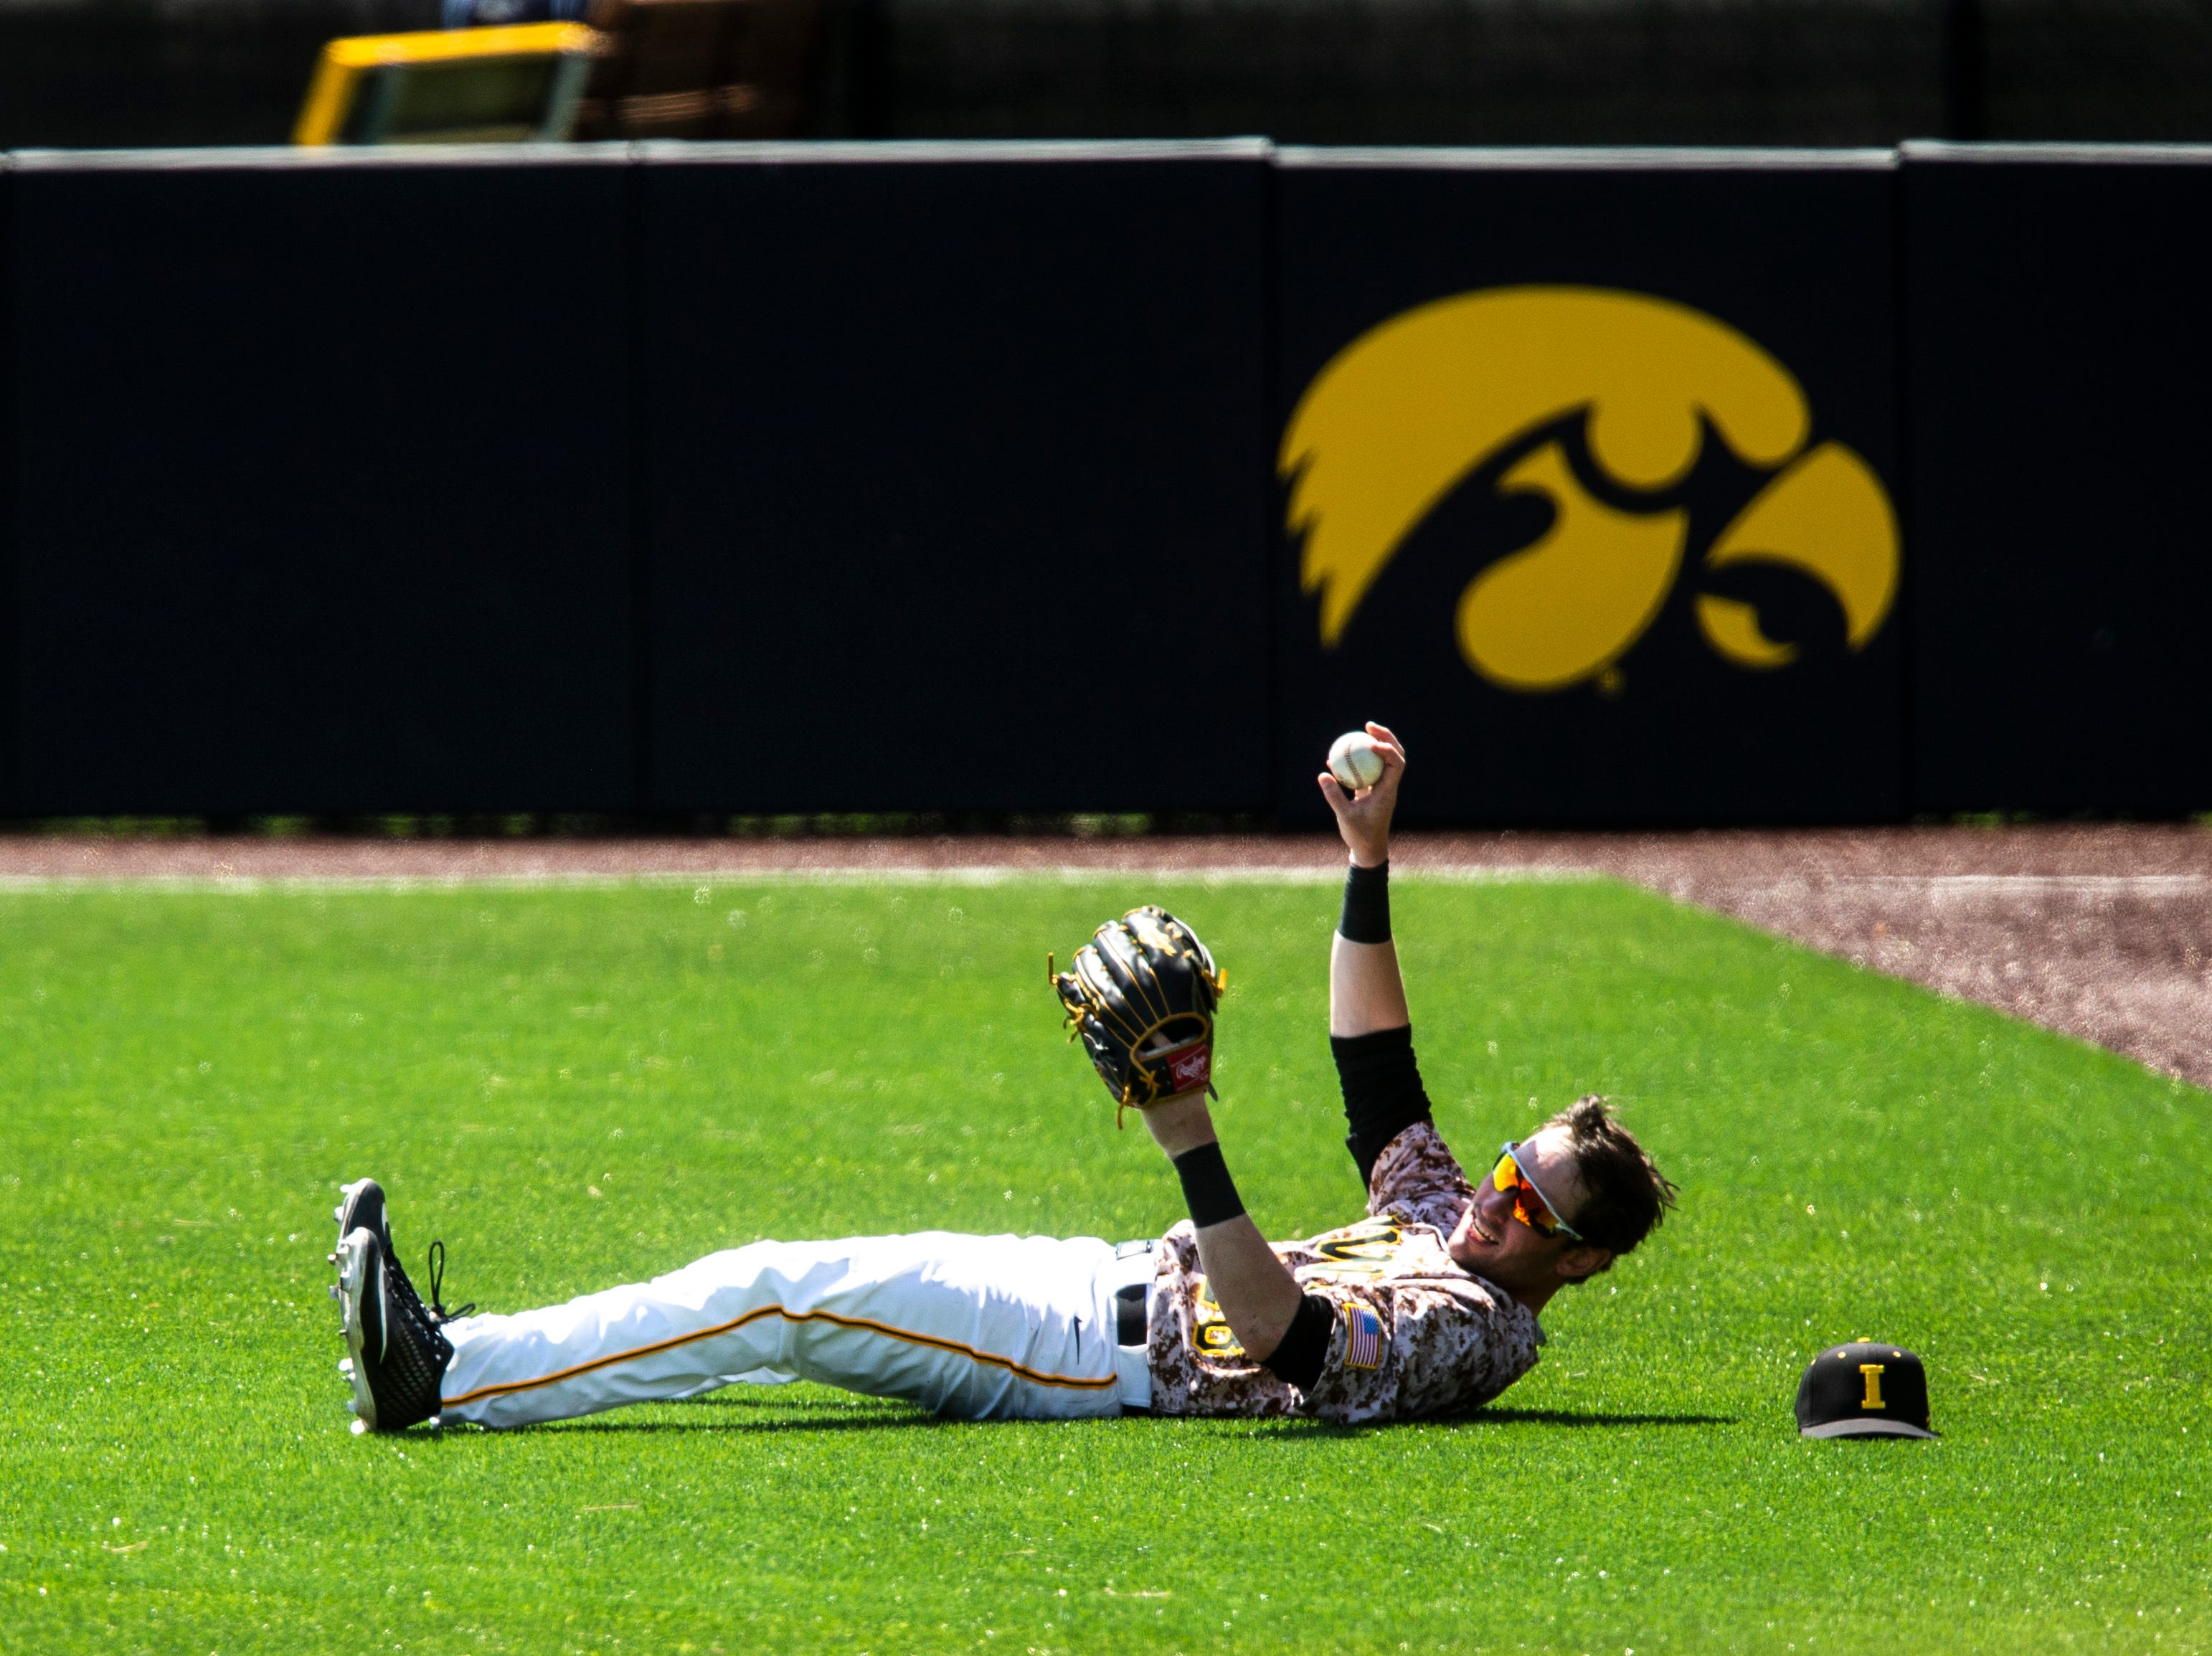 Iowa's Chris Whelan (28) holds up a ball after he made a leaping save in left field during a NCAA non conference baseball game, Sunday, May 5, 2019, at Duane Banks Field in Iowa City, Iowa.